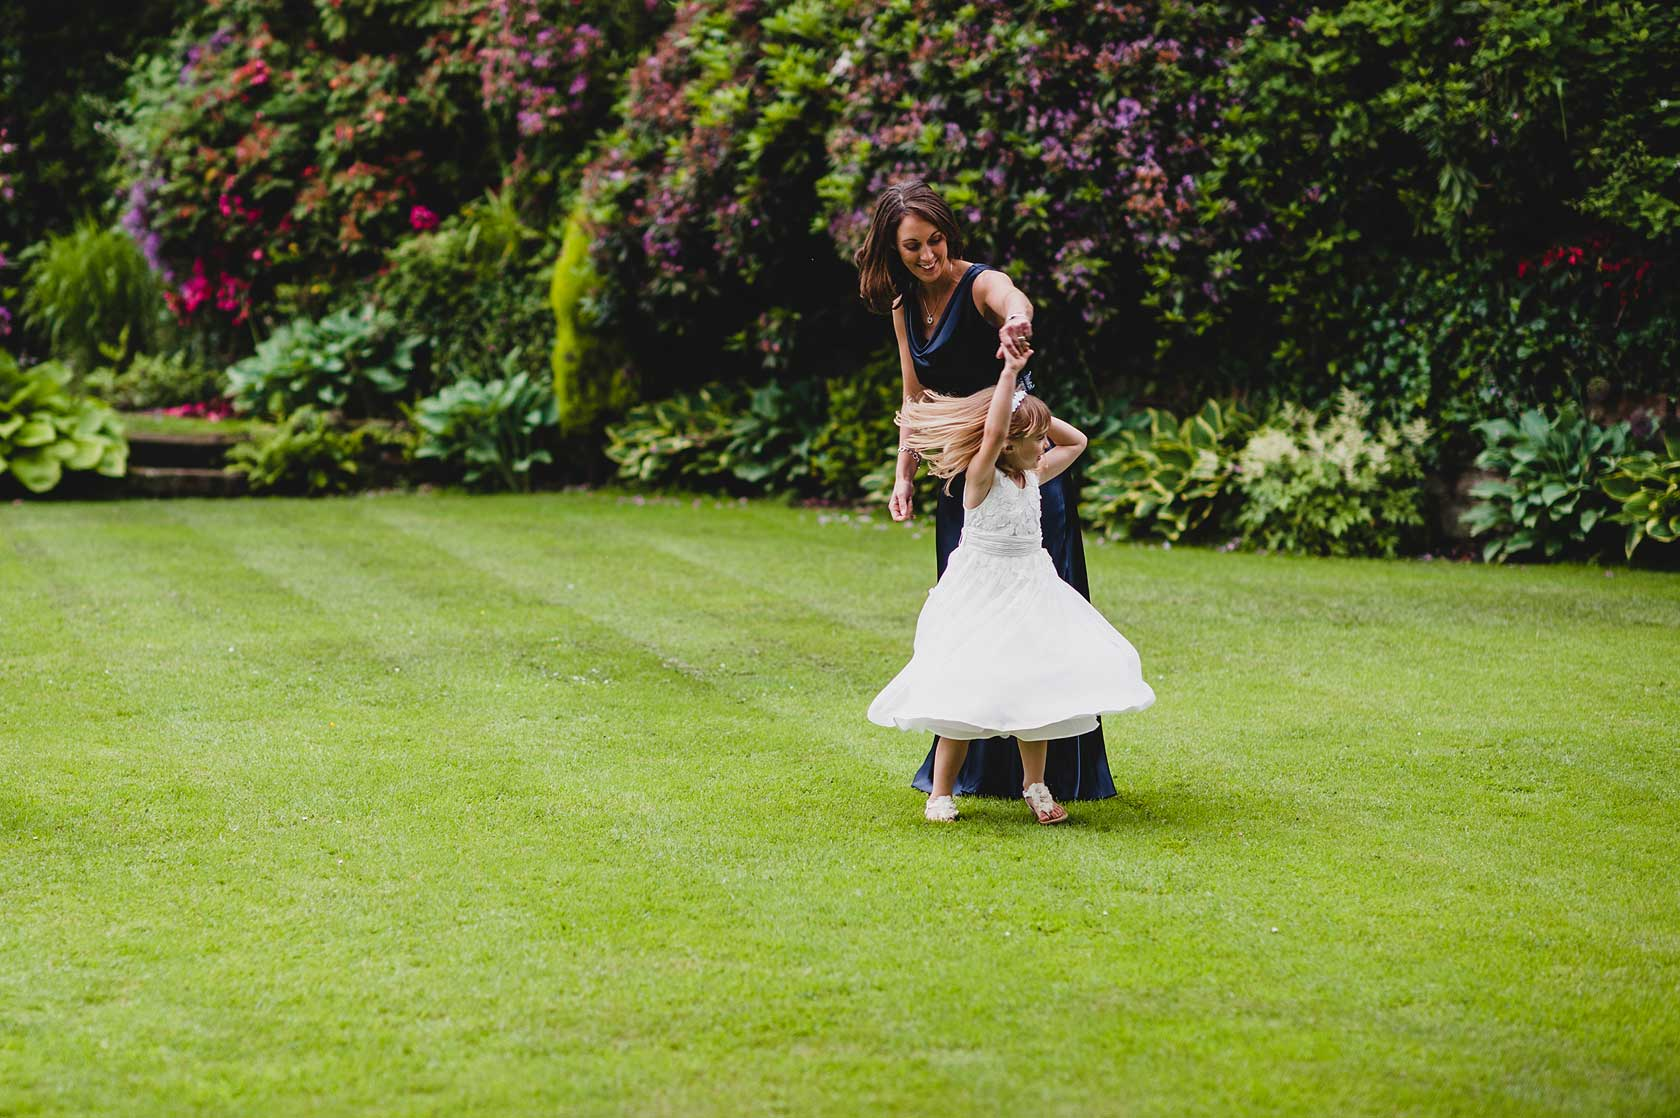 Reportage Wedding Photography in Lancashire